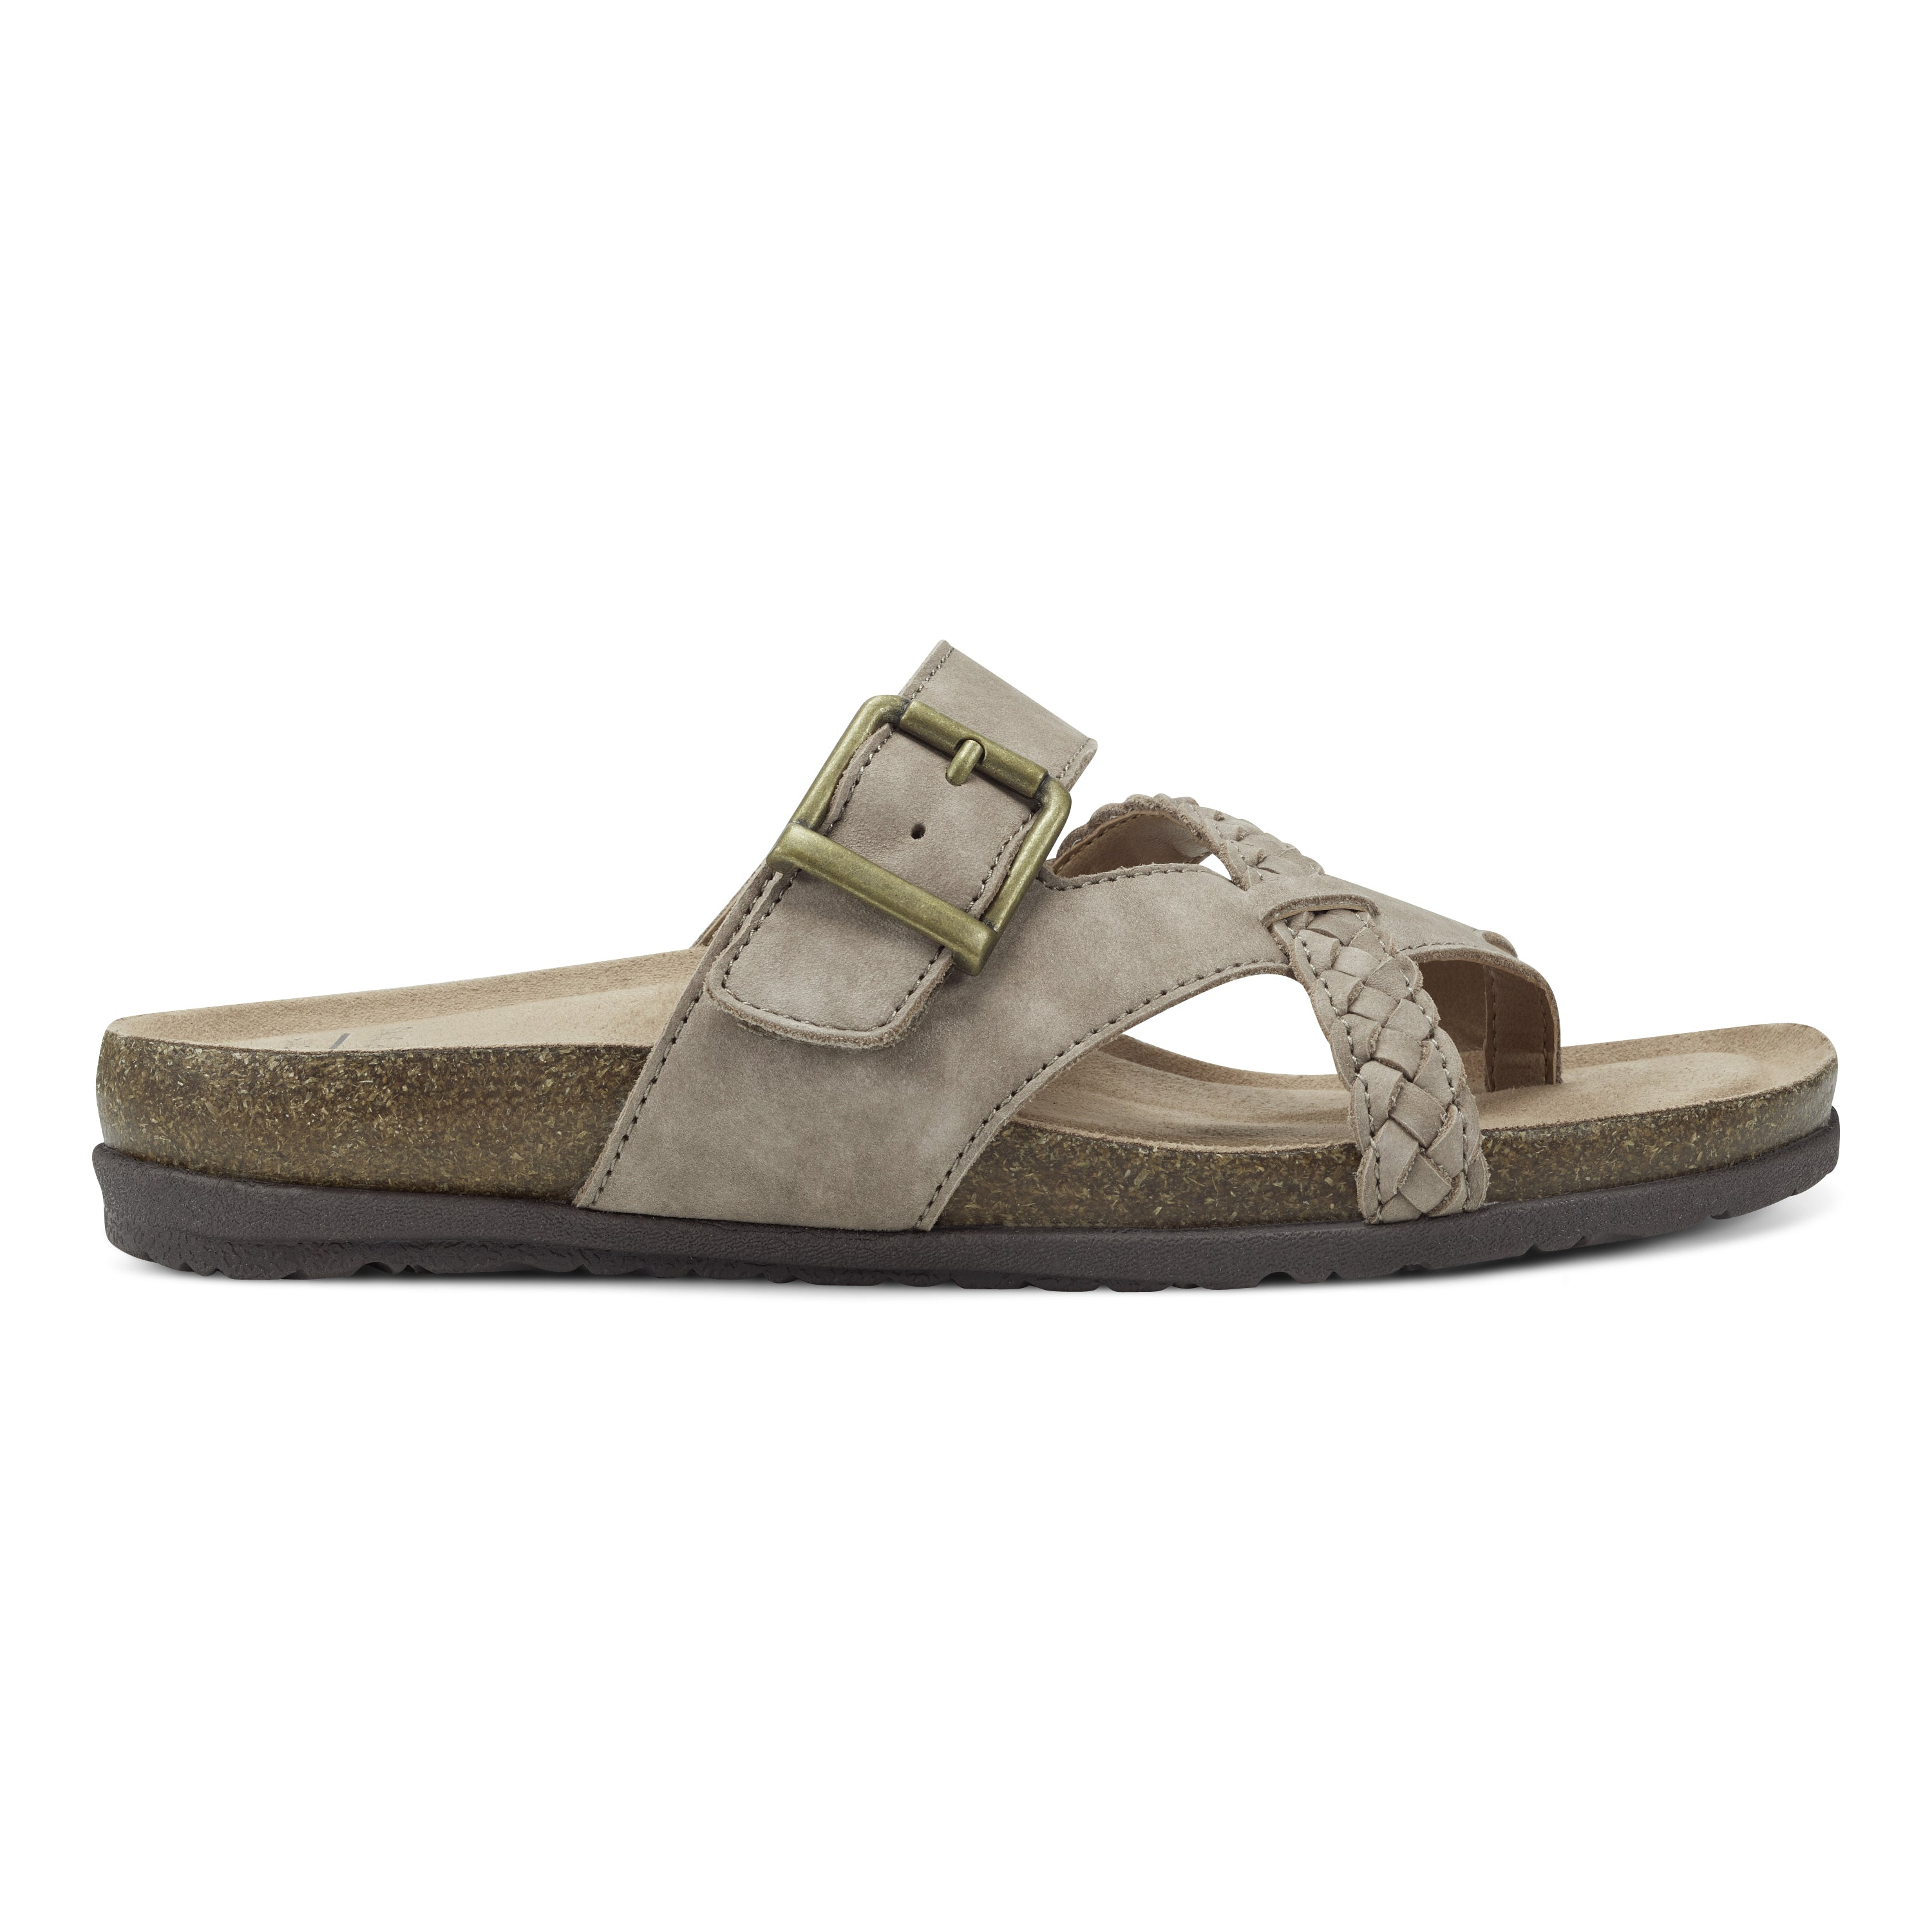 You\\\'ve got places to go and things to do, and the Earth Origins Orono Foster Thong Sandal can get you there, with its lovely leather straps and cork midsole that provides endless style and support.